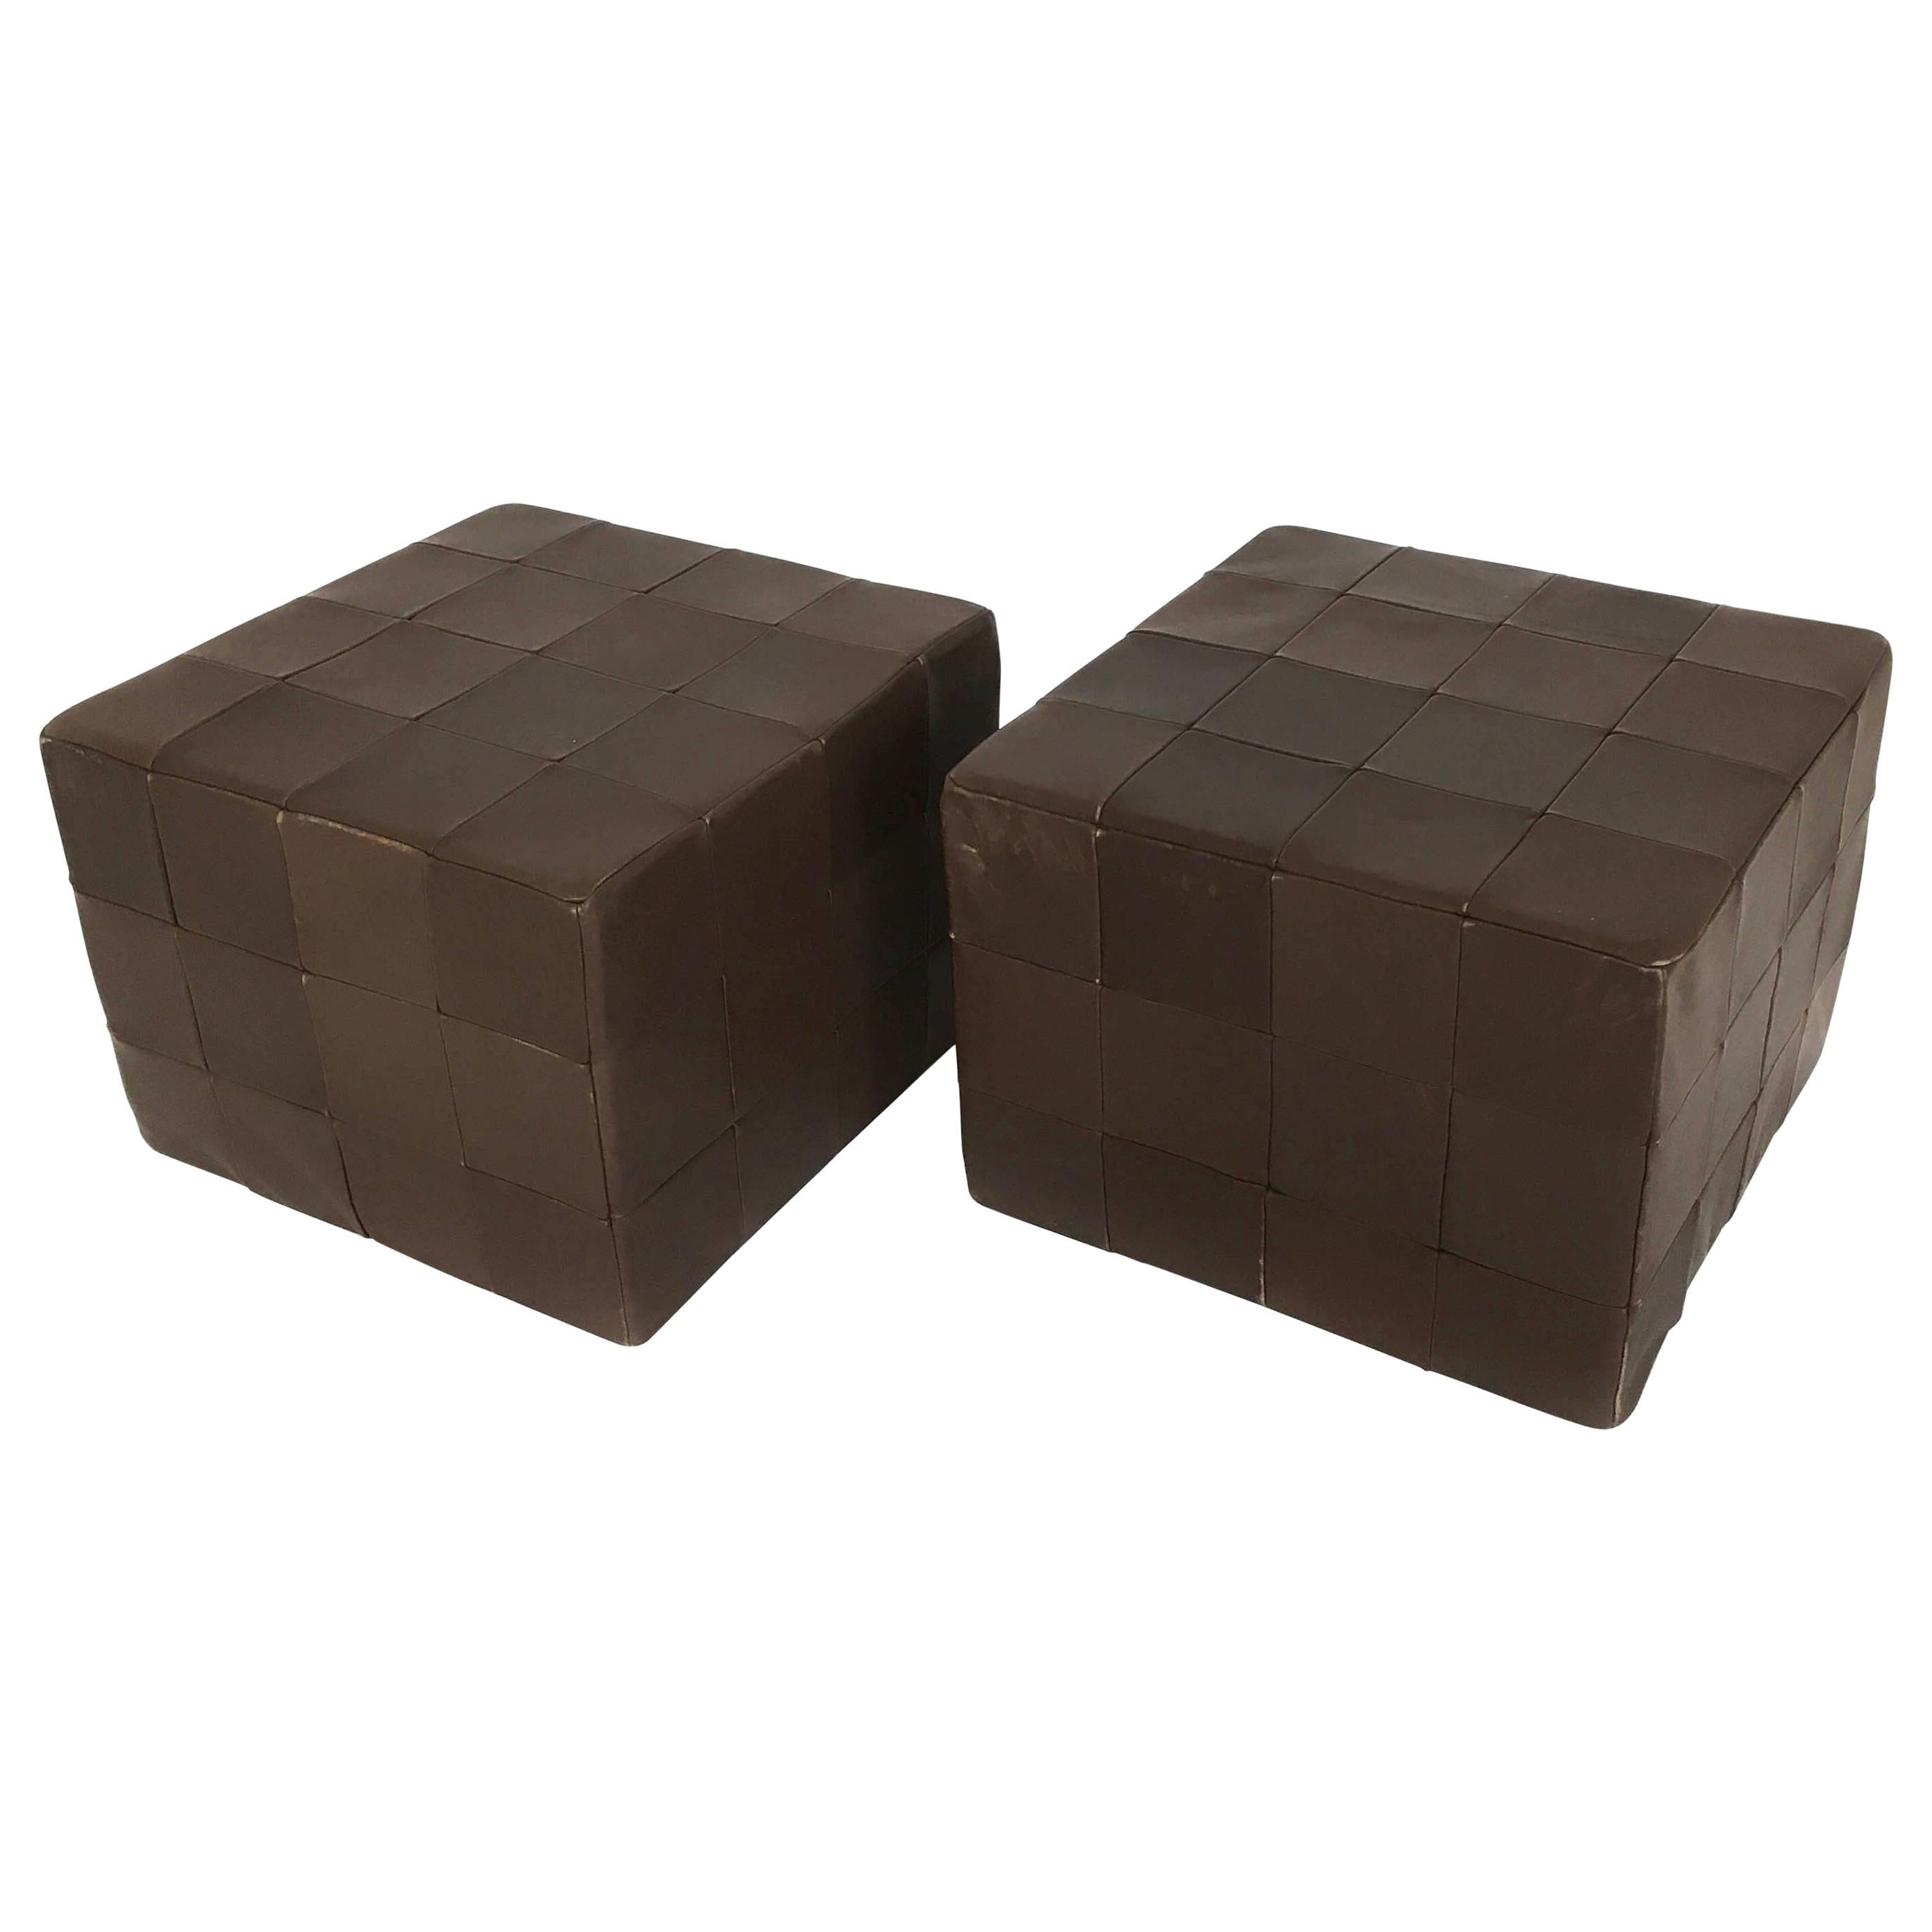 De Sede Brown Leather Patchwork Cubes Ottomans, Switzerland 1970s